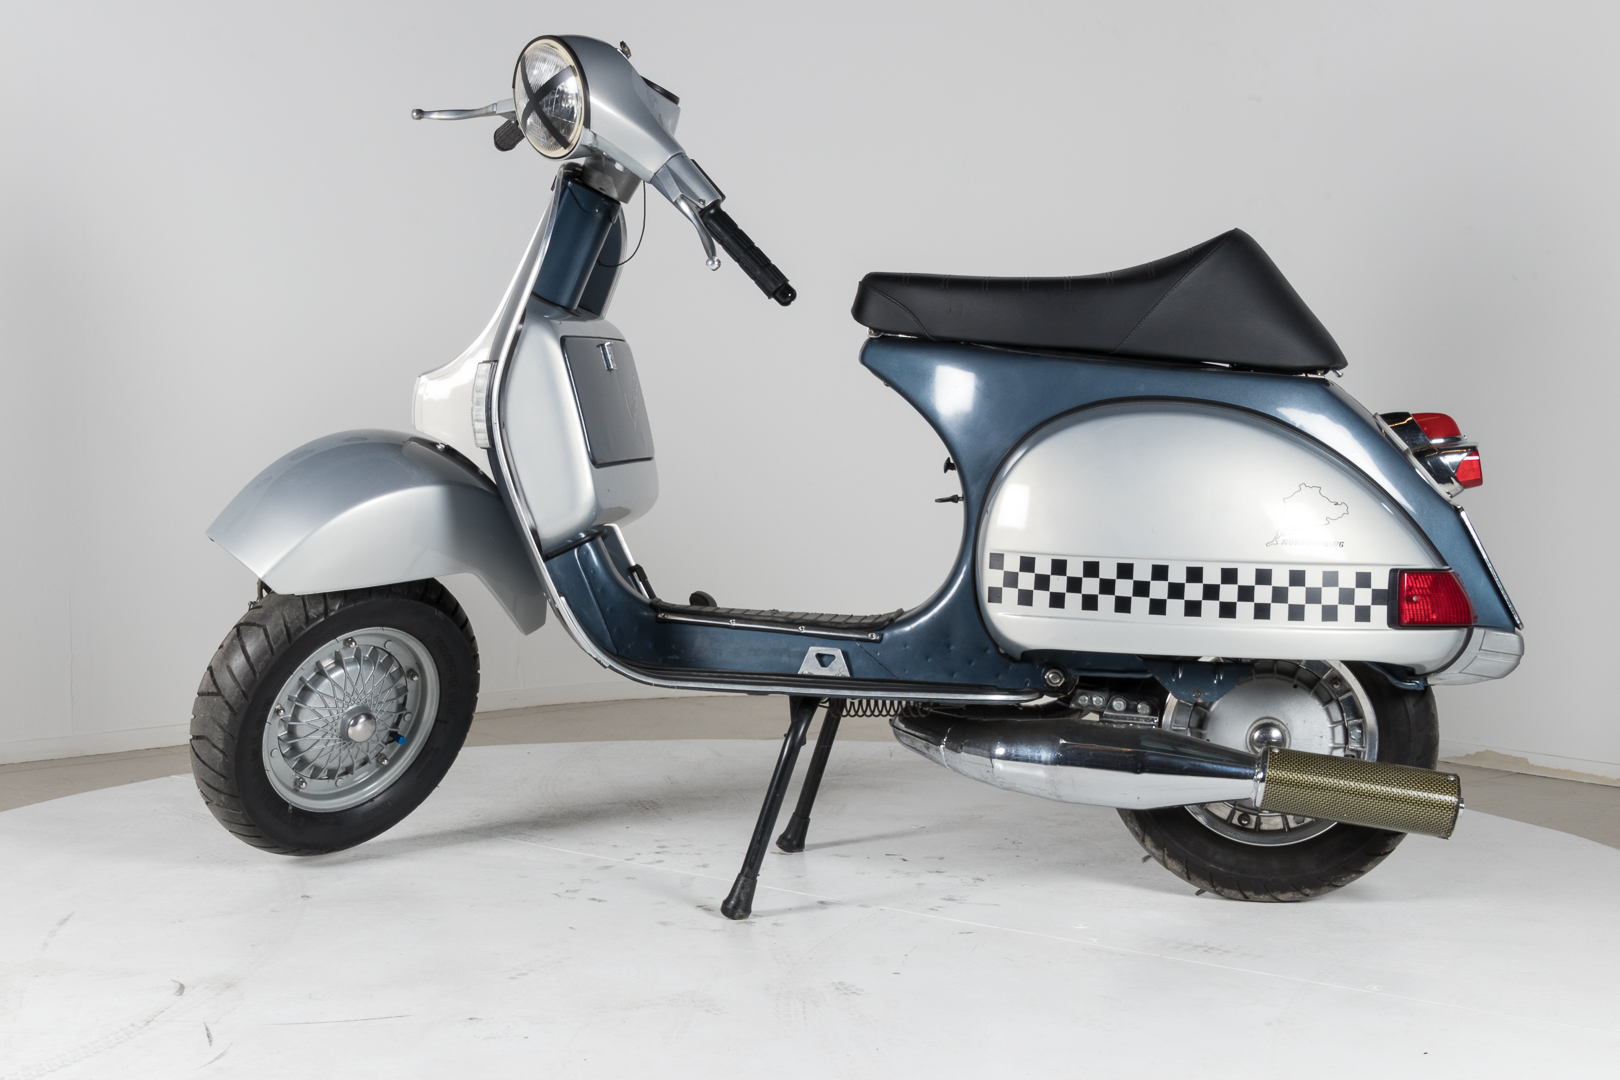 1983 piaggio vespa px 200 corsa piaggio moto d 39 epoca. Black Bedroom Furniture Sets. Home Design Ideas